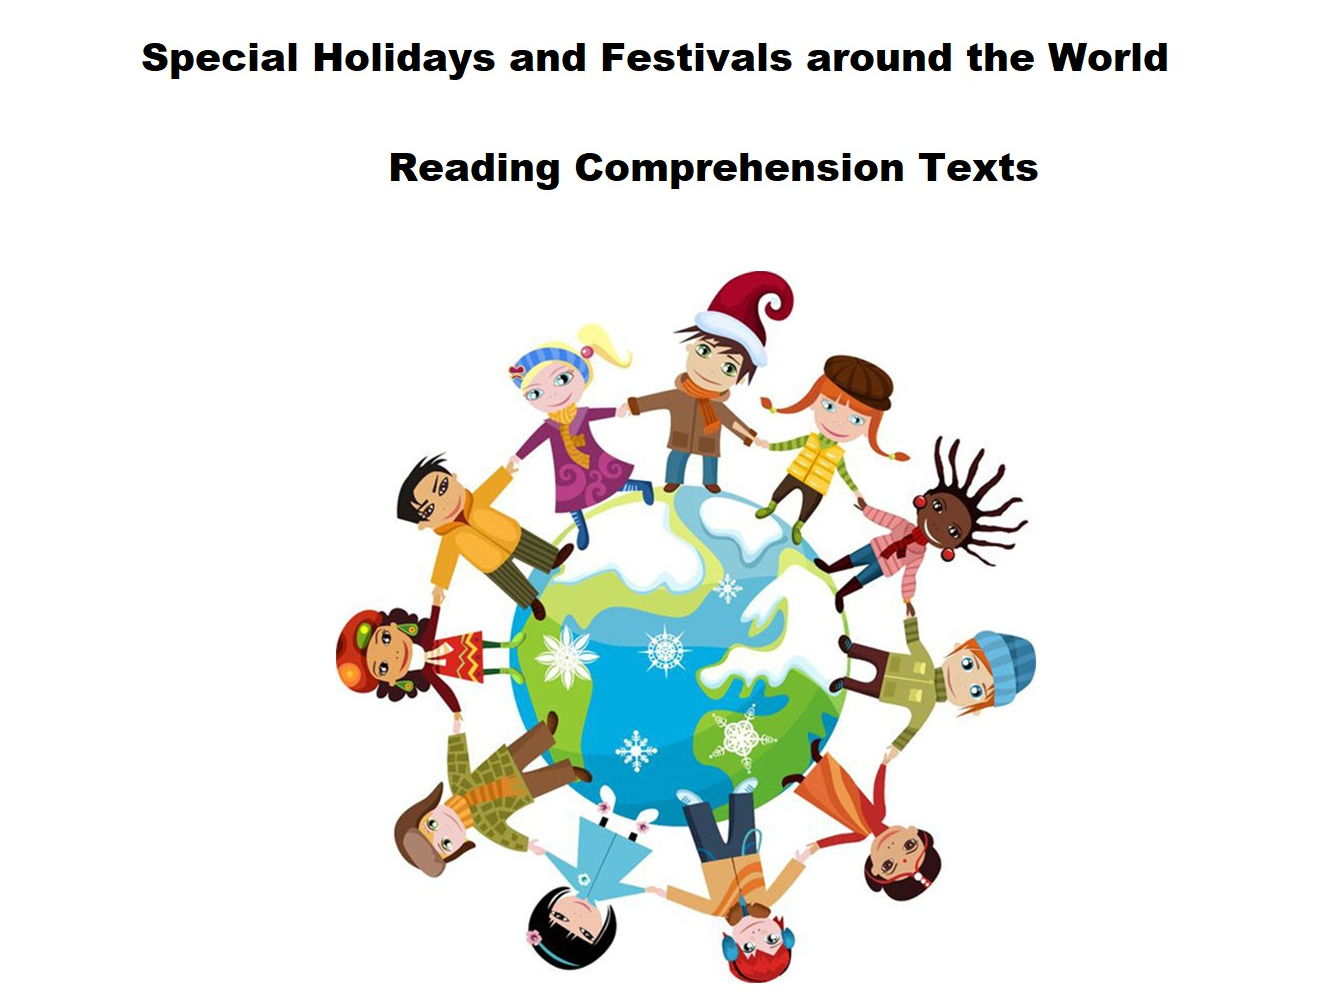 Festivals and Special Holidays Around The World - Reading Comprehension Super Bundle!